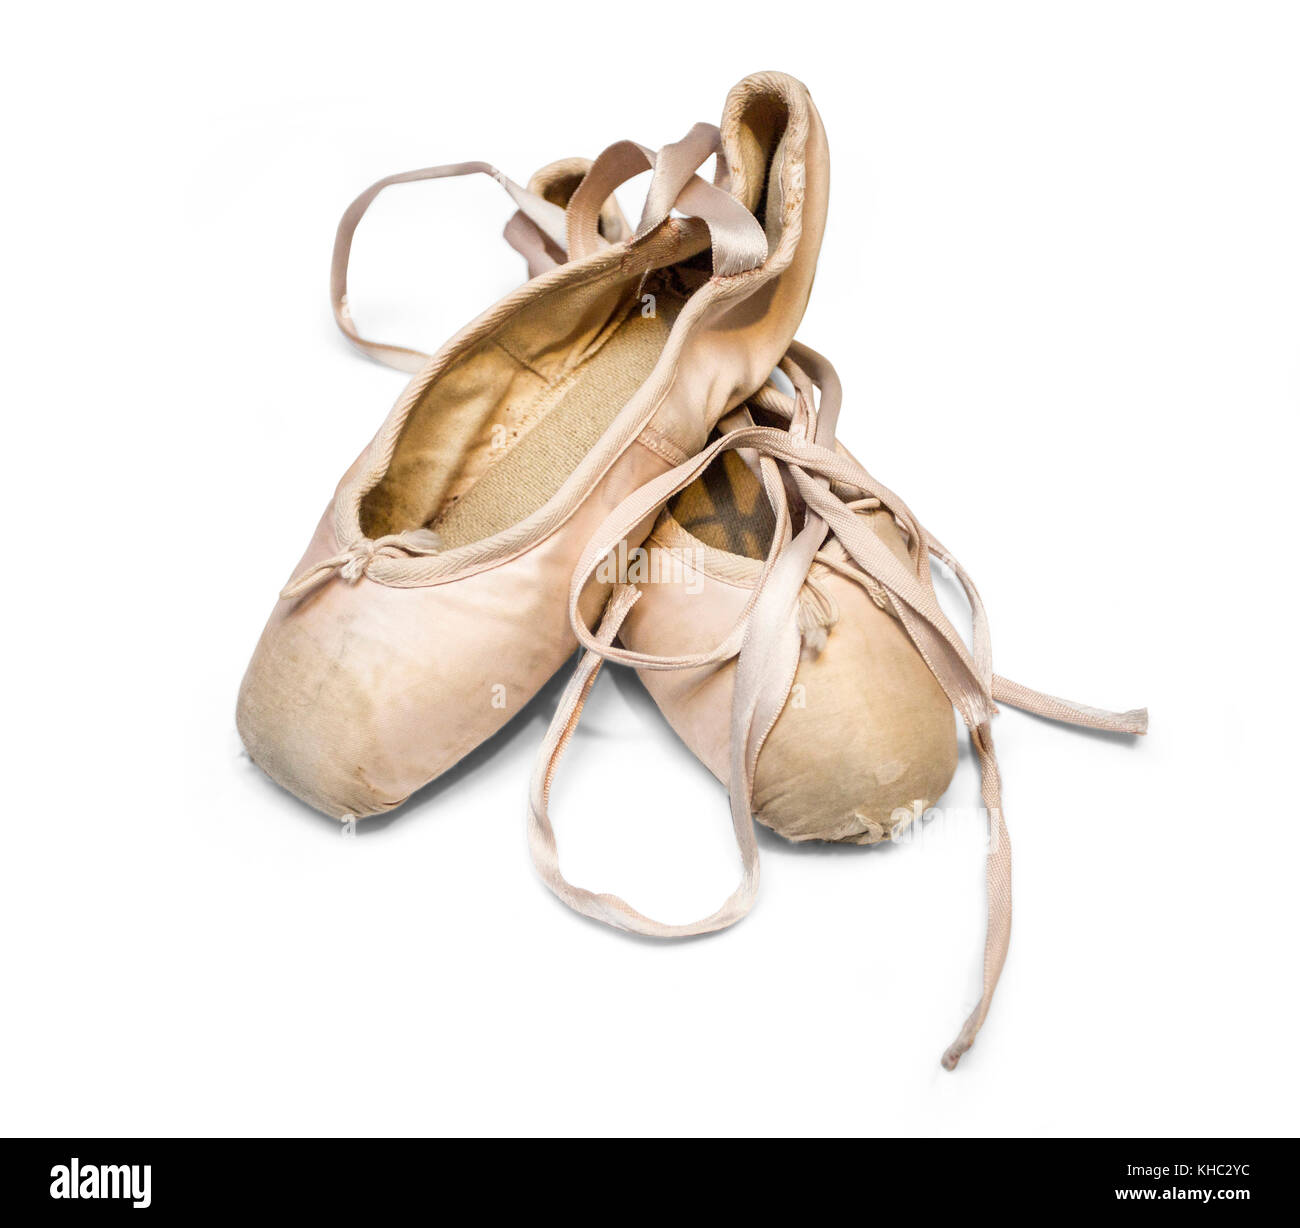 Old used ballet shoes isolated on white background. with clipping path - Stock Image